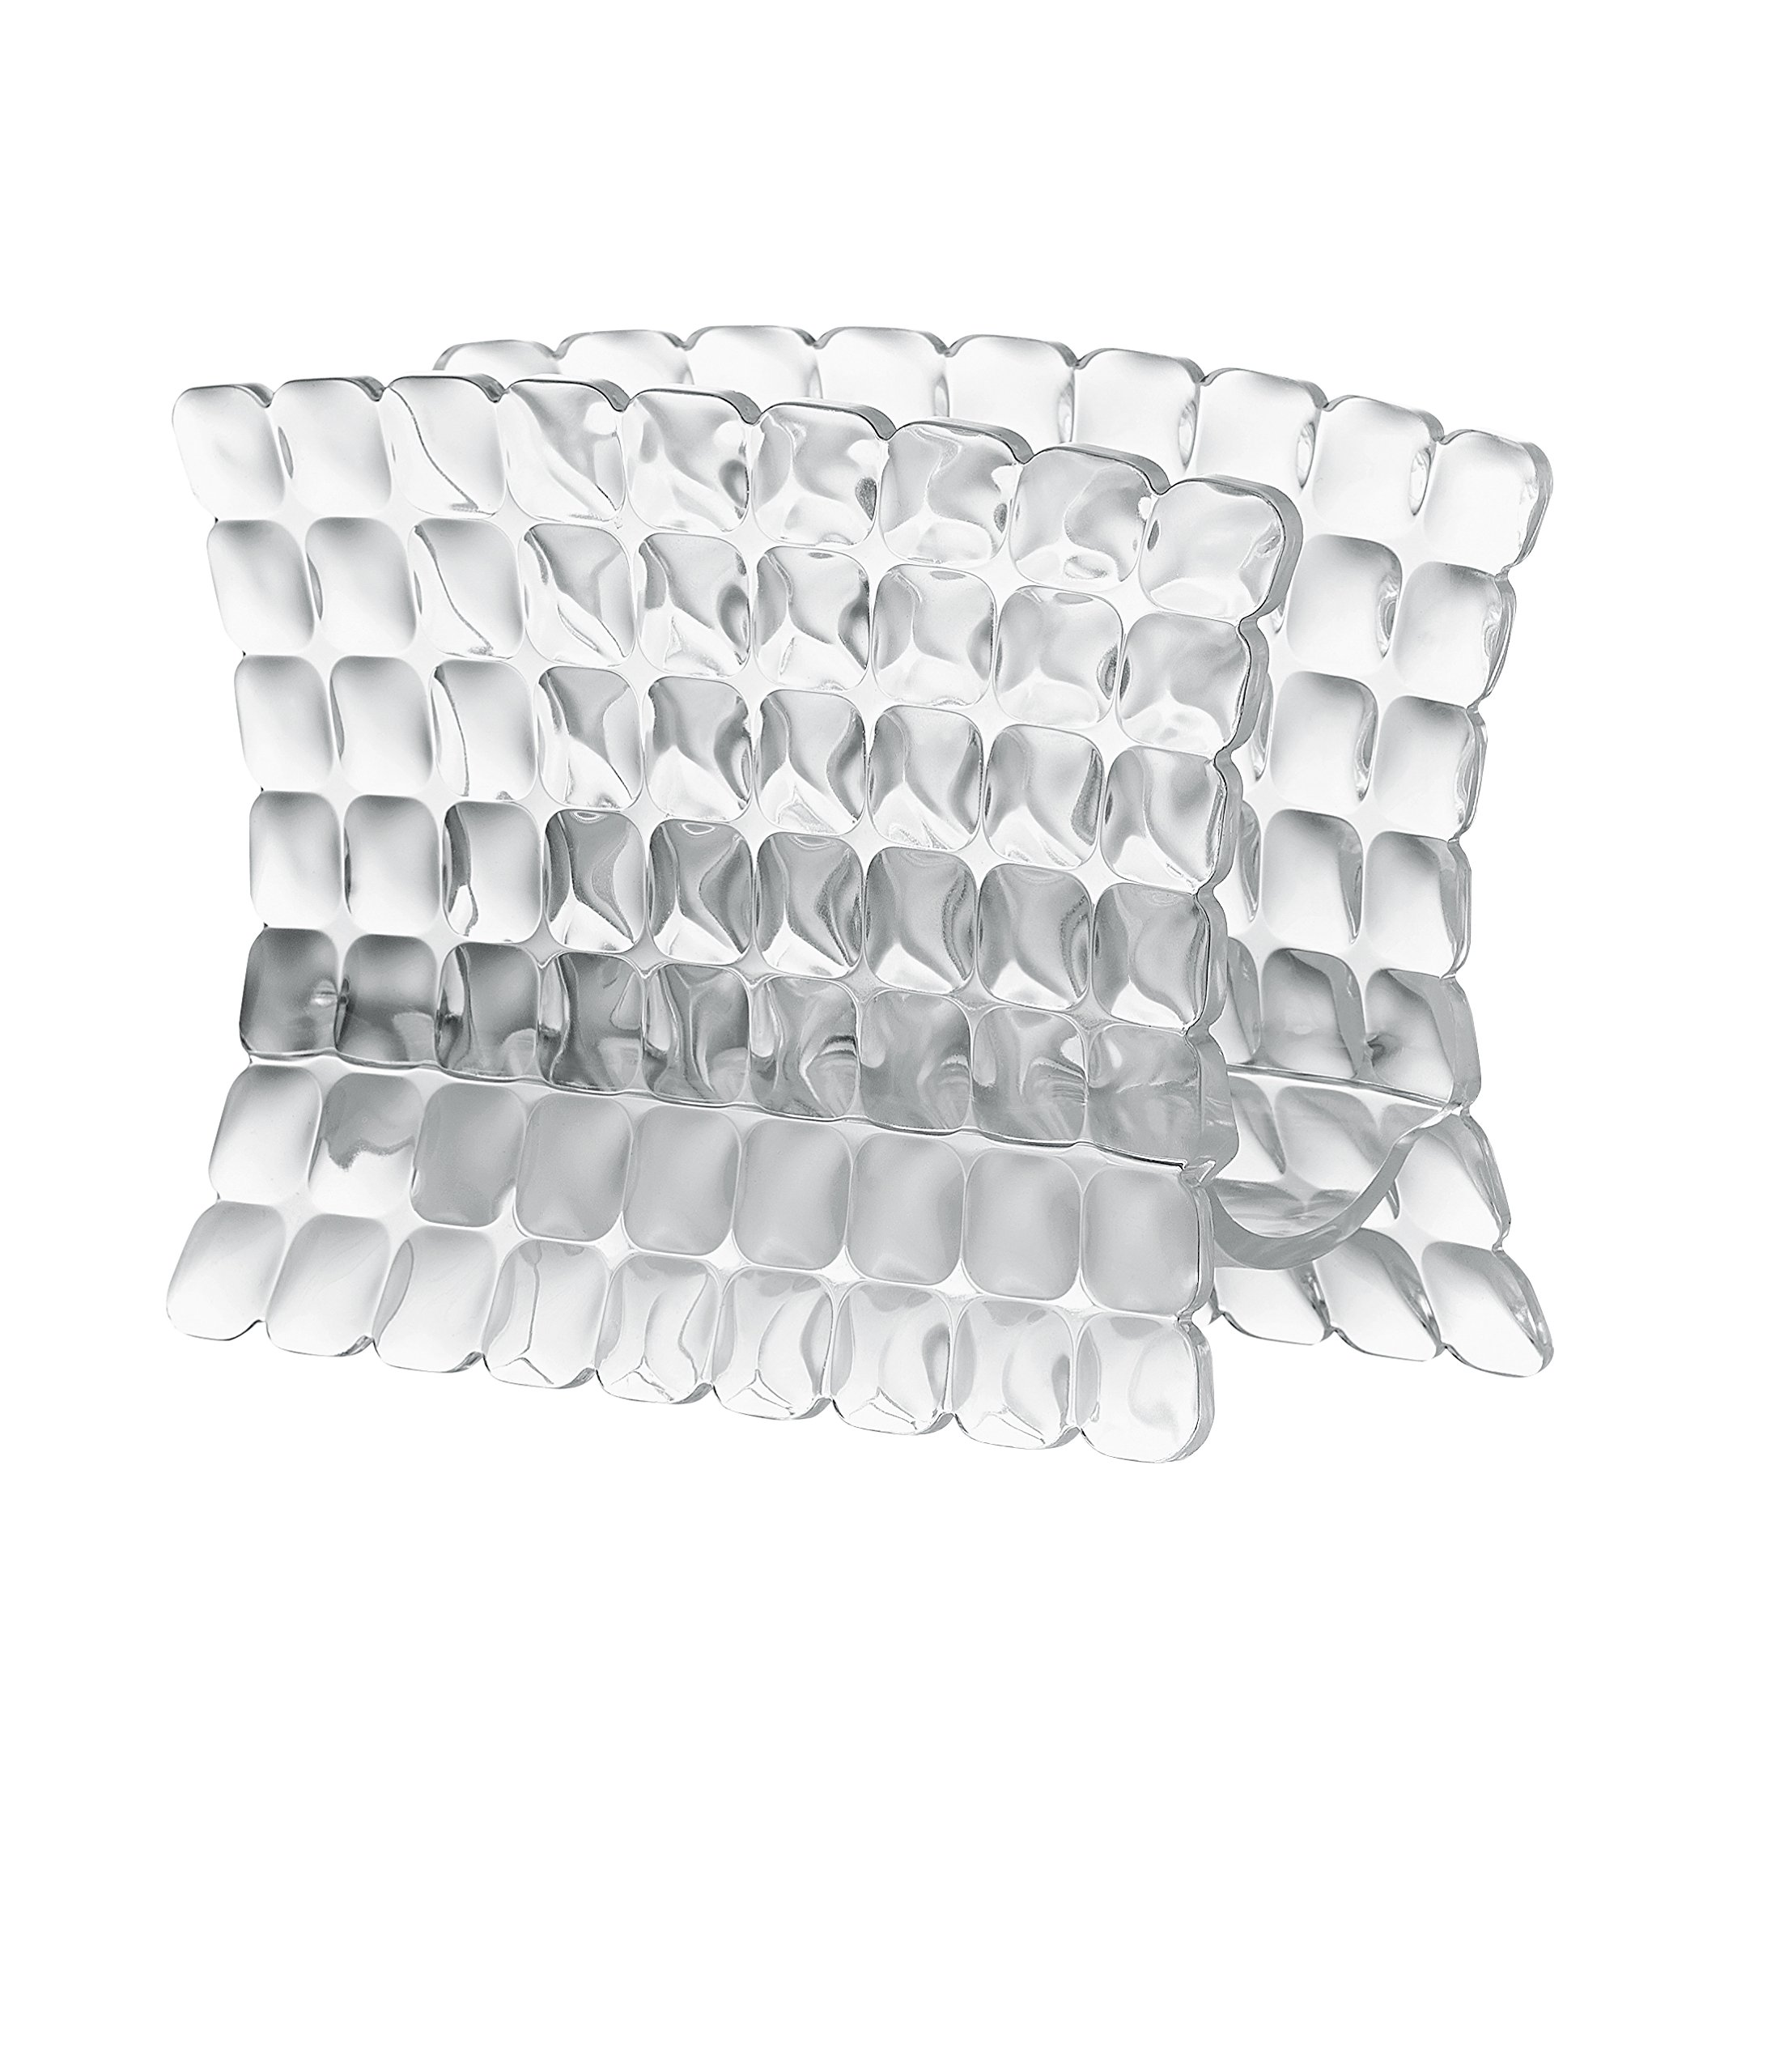 Guzzini Tiffany Collection Table Napkin Holder, Durable BPA-Free Acrylic Looks Like Crystal, 6'' x 3'' x 4-1/4, Transparent